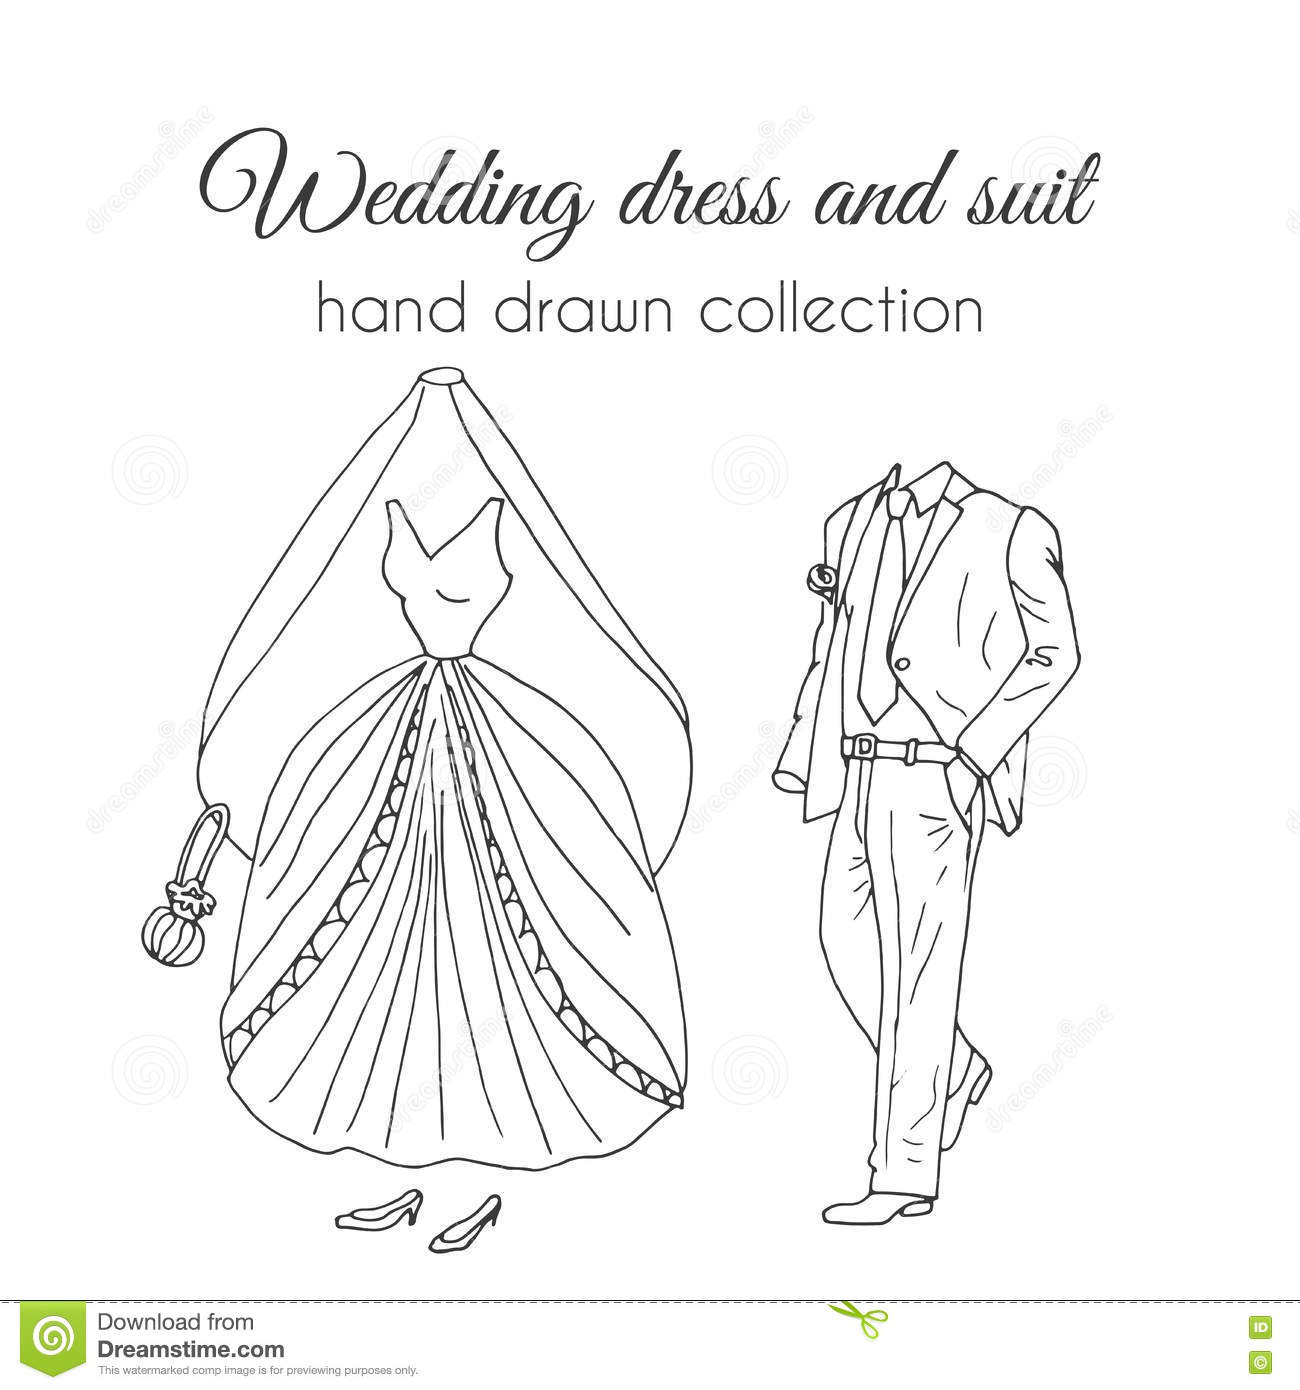 Wedding Dress And Suit Illustration Sketchy Style Hand - Fashion Dress Sketches Black And White